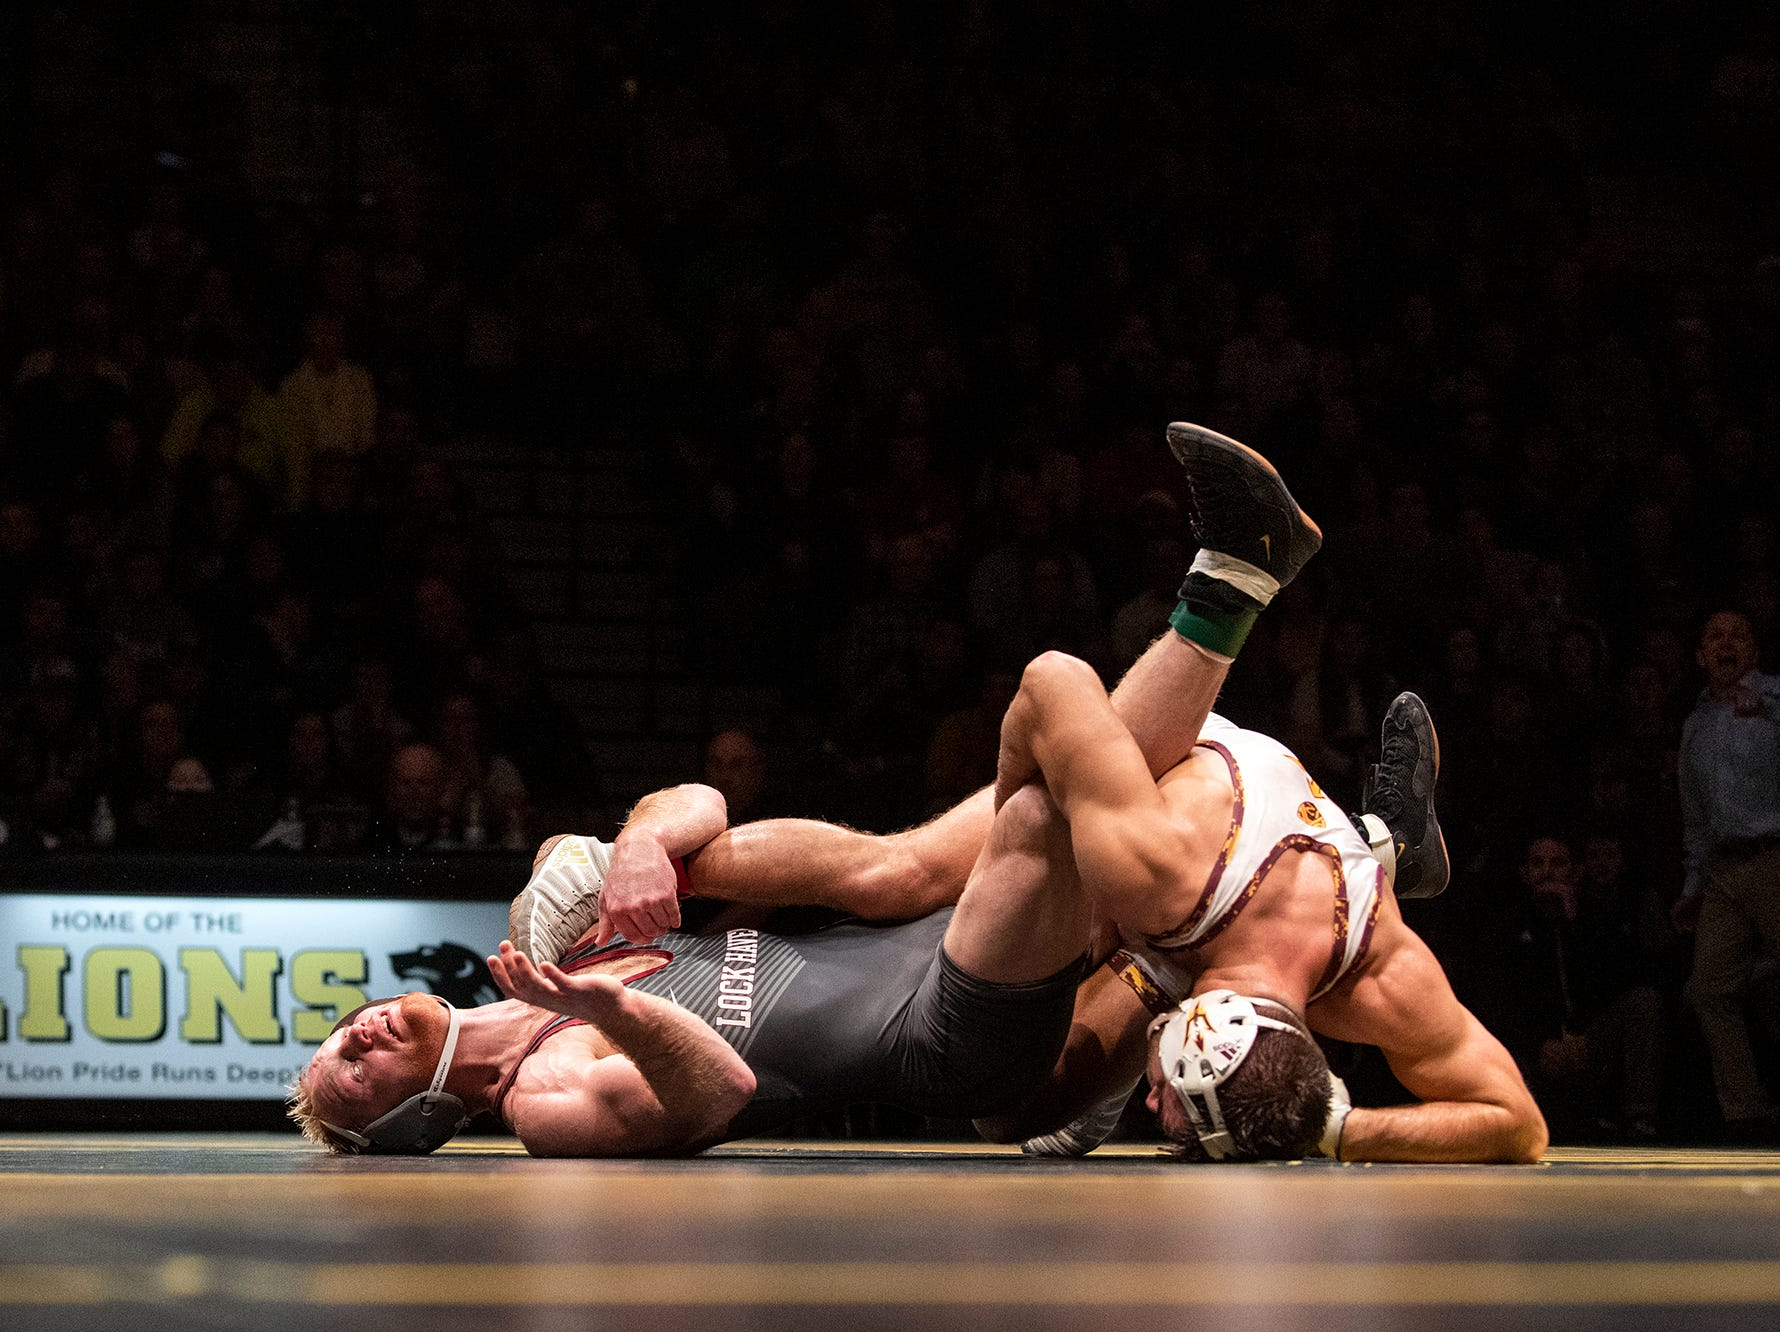 Arizona State's Josh Shields, right, works to turn Lock Haven's Chance Marsteller to his back during the 165-pound bout at Red Lion's Fitzkee Athletic Center on Friday, Jan. 25, 2019. Shields (No. 5) beat Marsteller (No. 4), 2-1, in a tiebreaker. No. 22 Lock Haven upset No. 12 Arizona State, 23-14, in the first ever 'Rumble in the Jungle.'